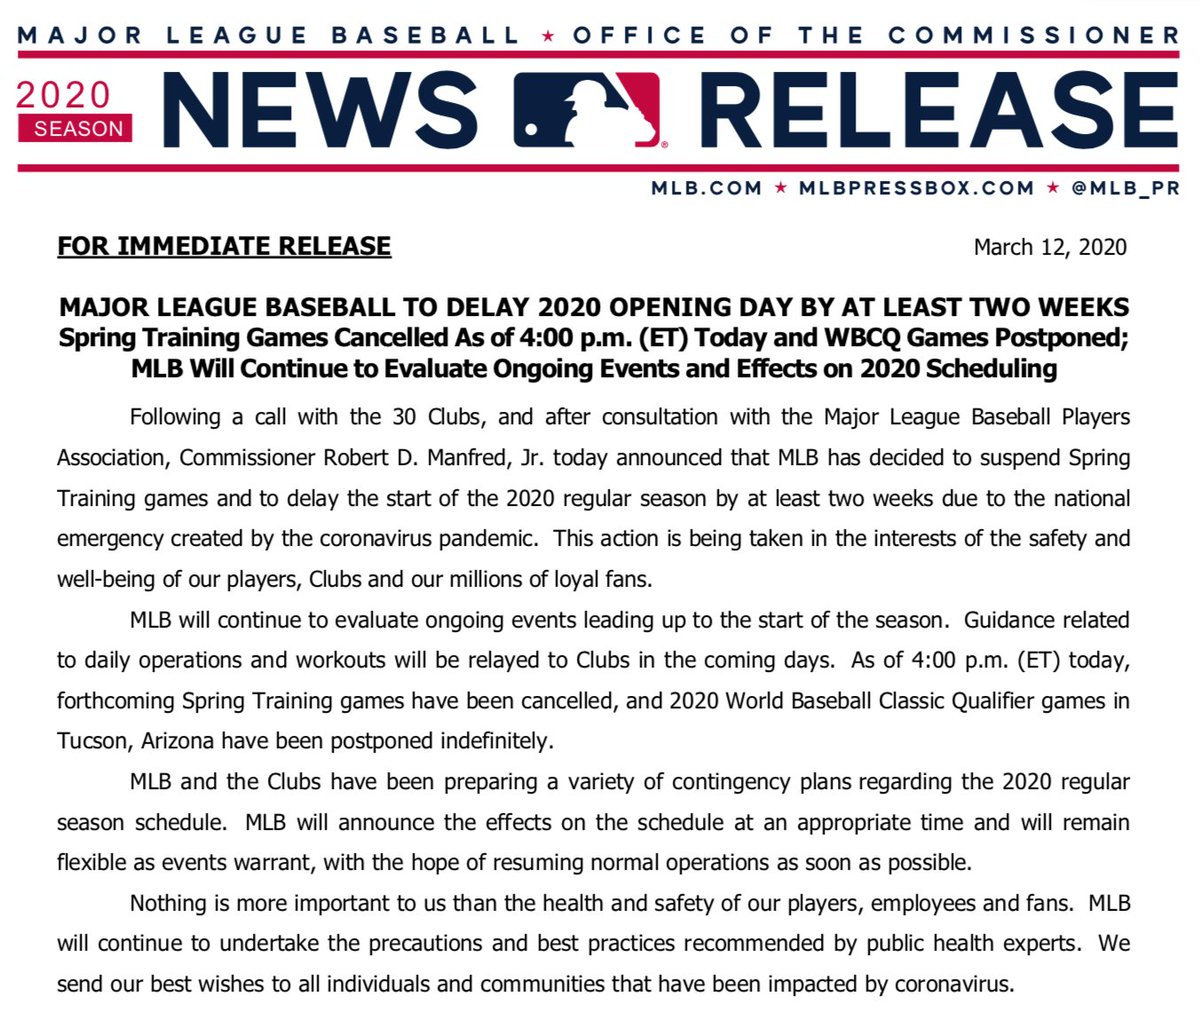 Statement from Major League Baseball: